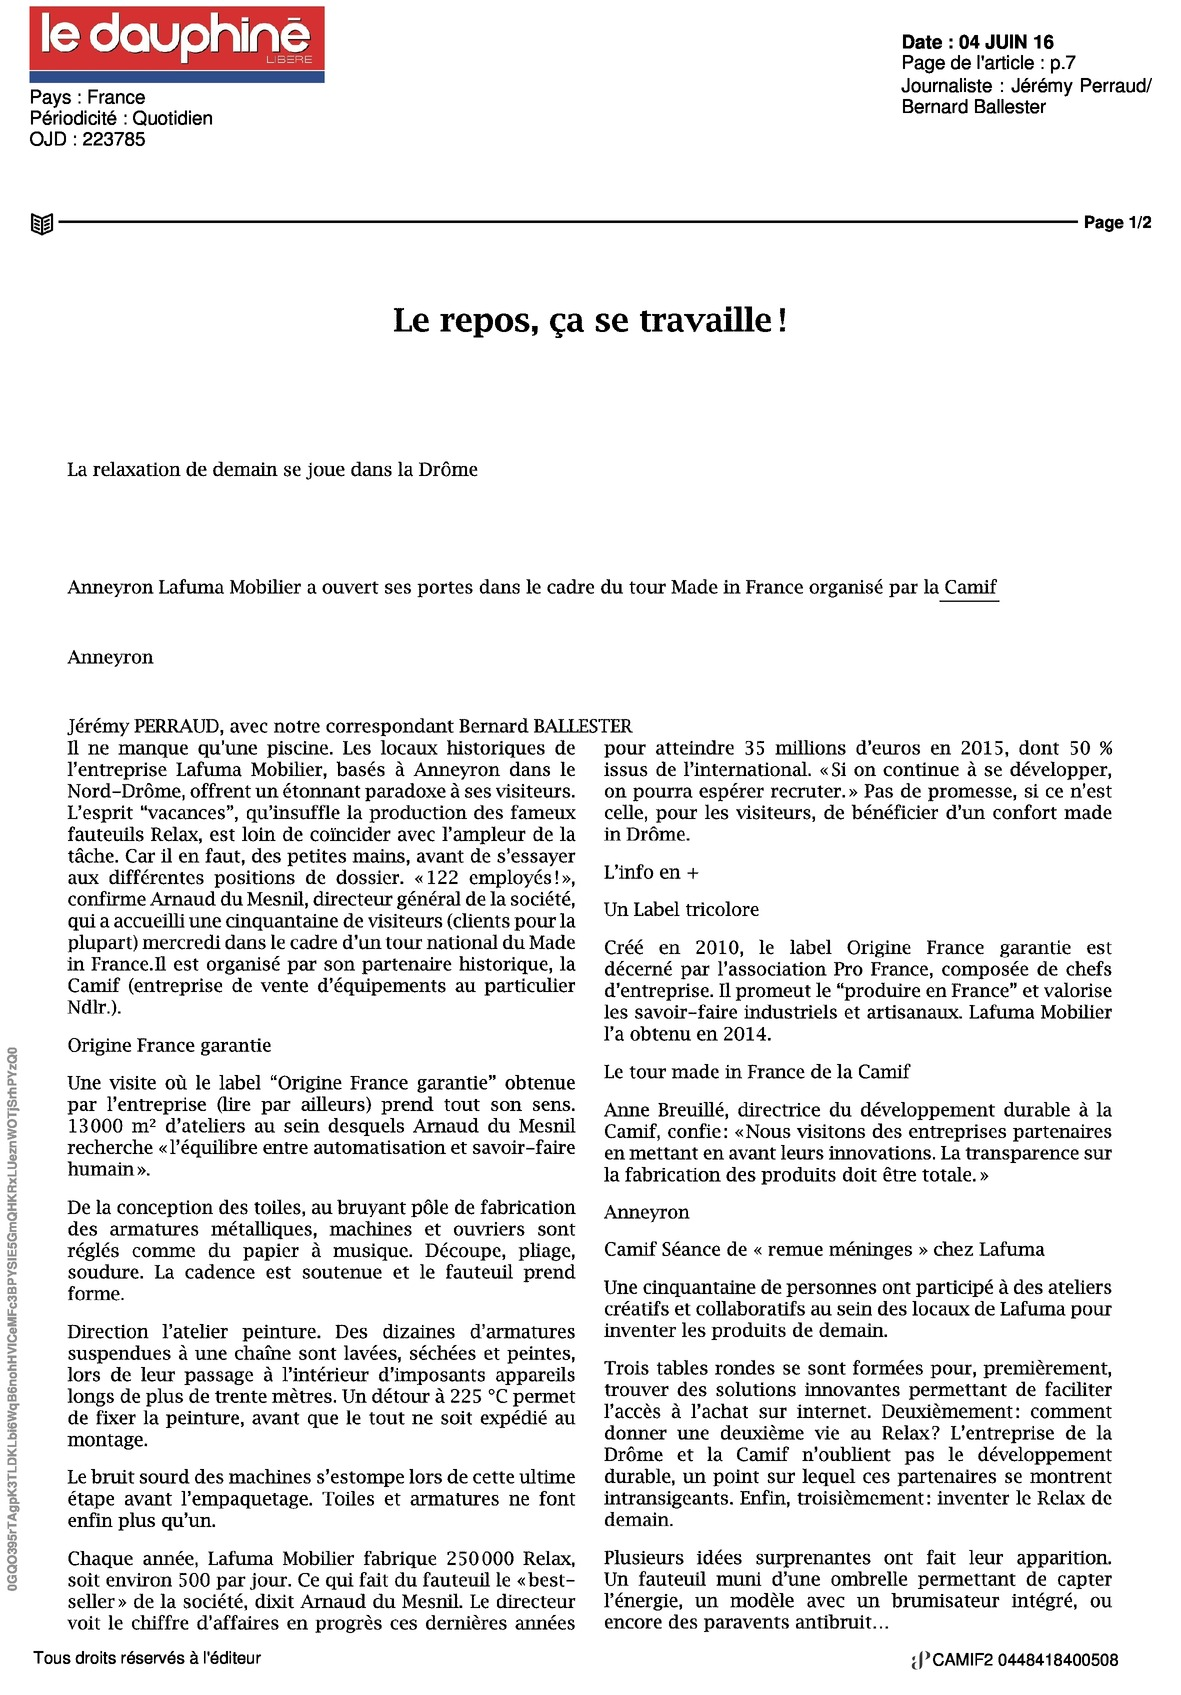 2016-06-041440le_dauphine_libere-page0